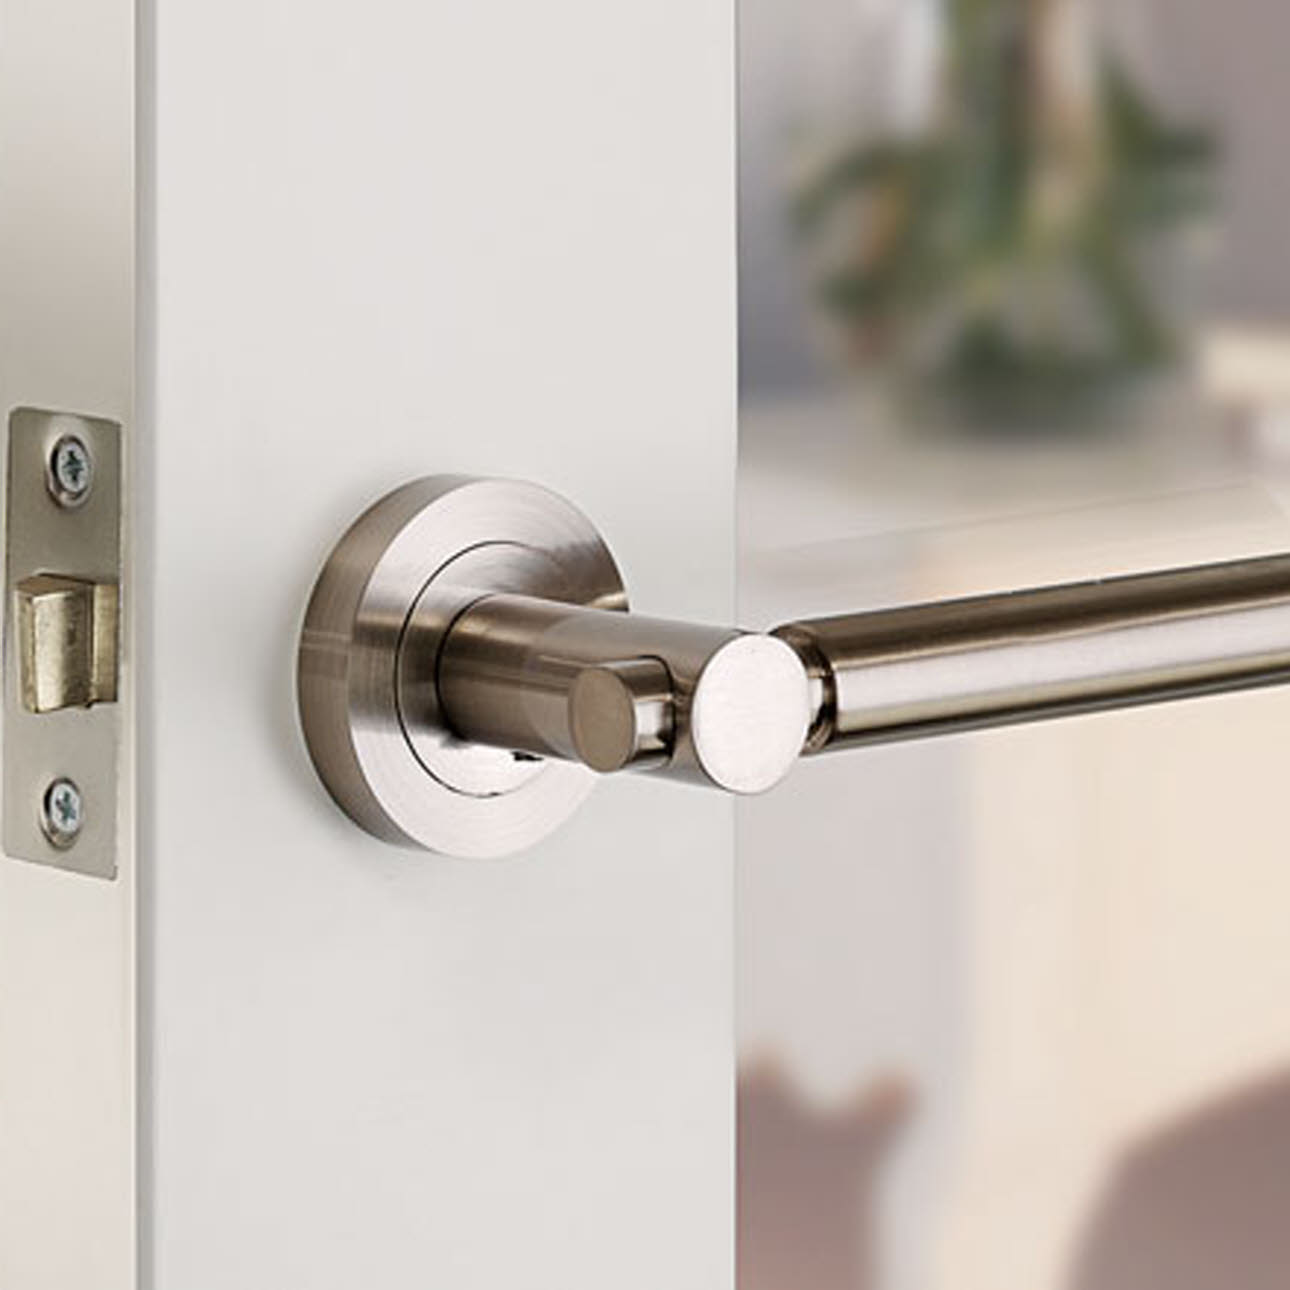 Metallic door handle on open door